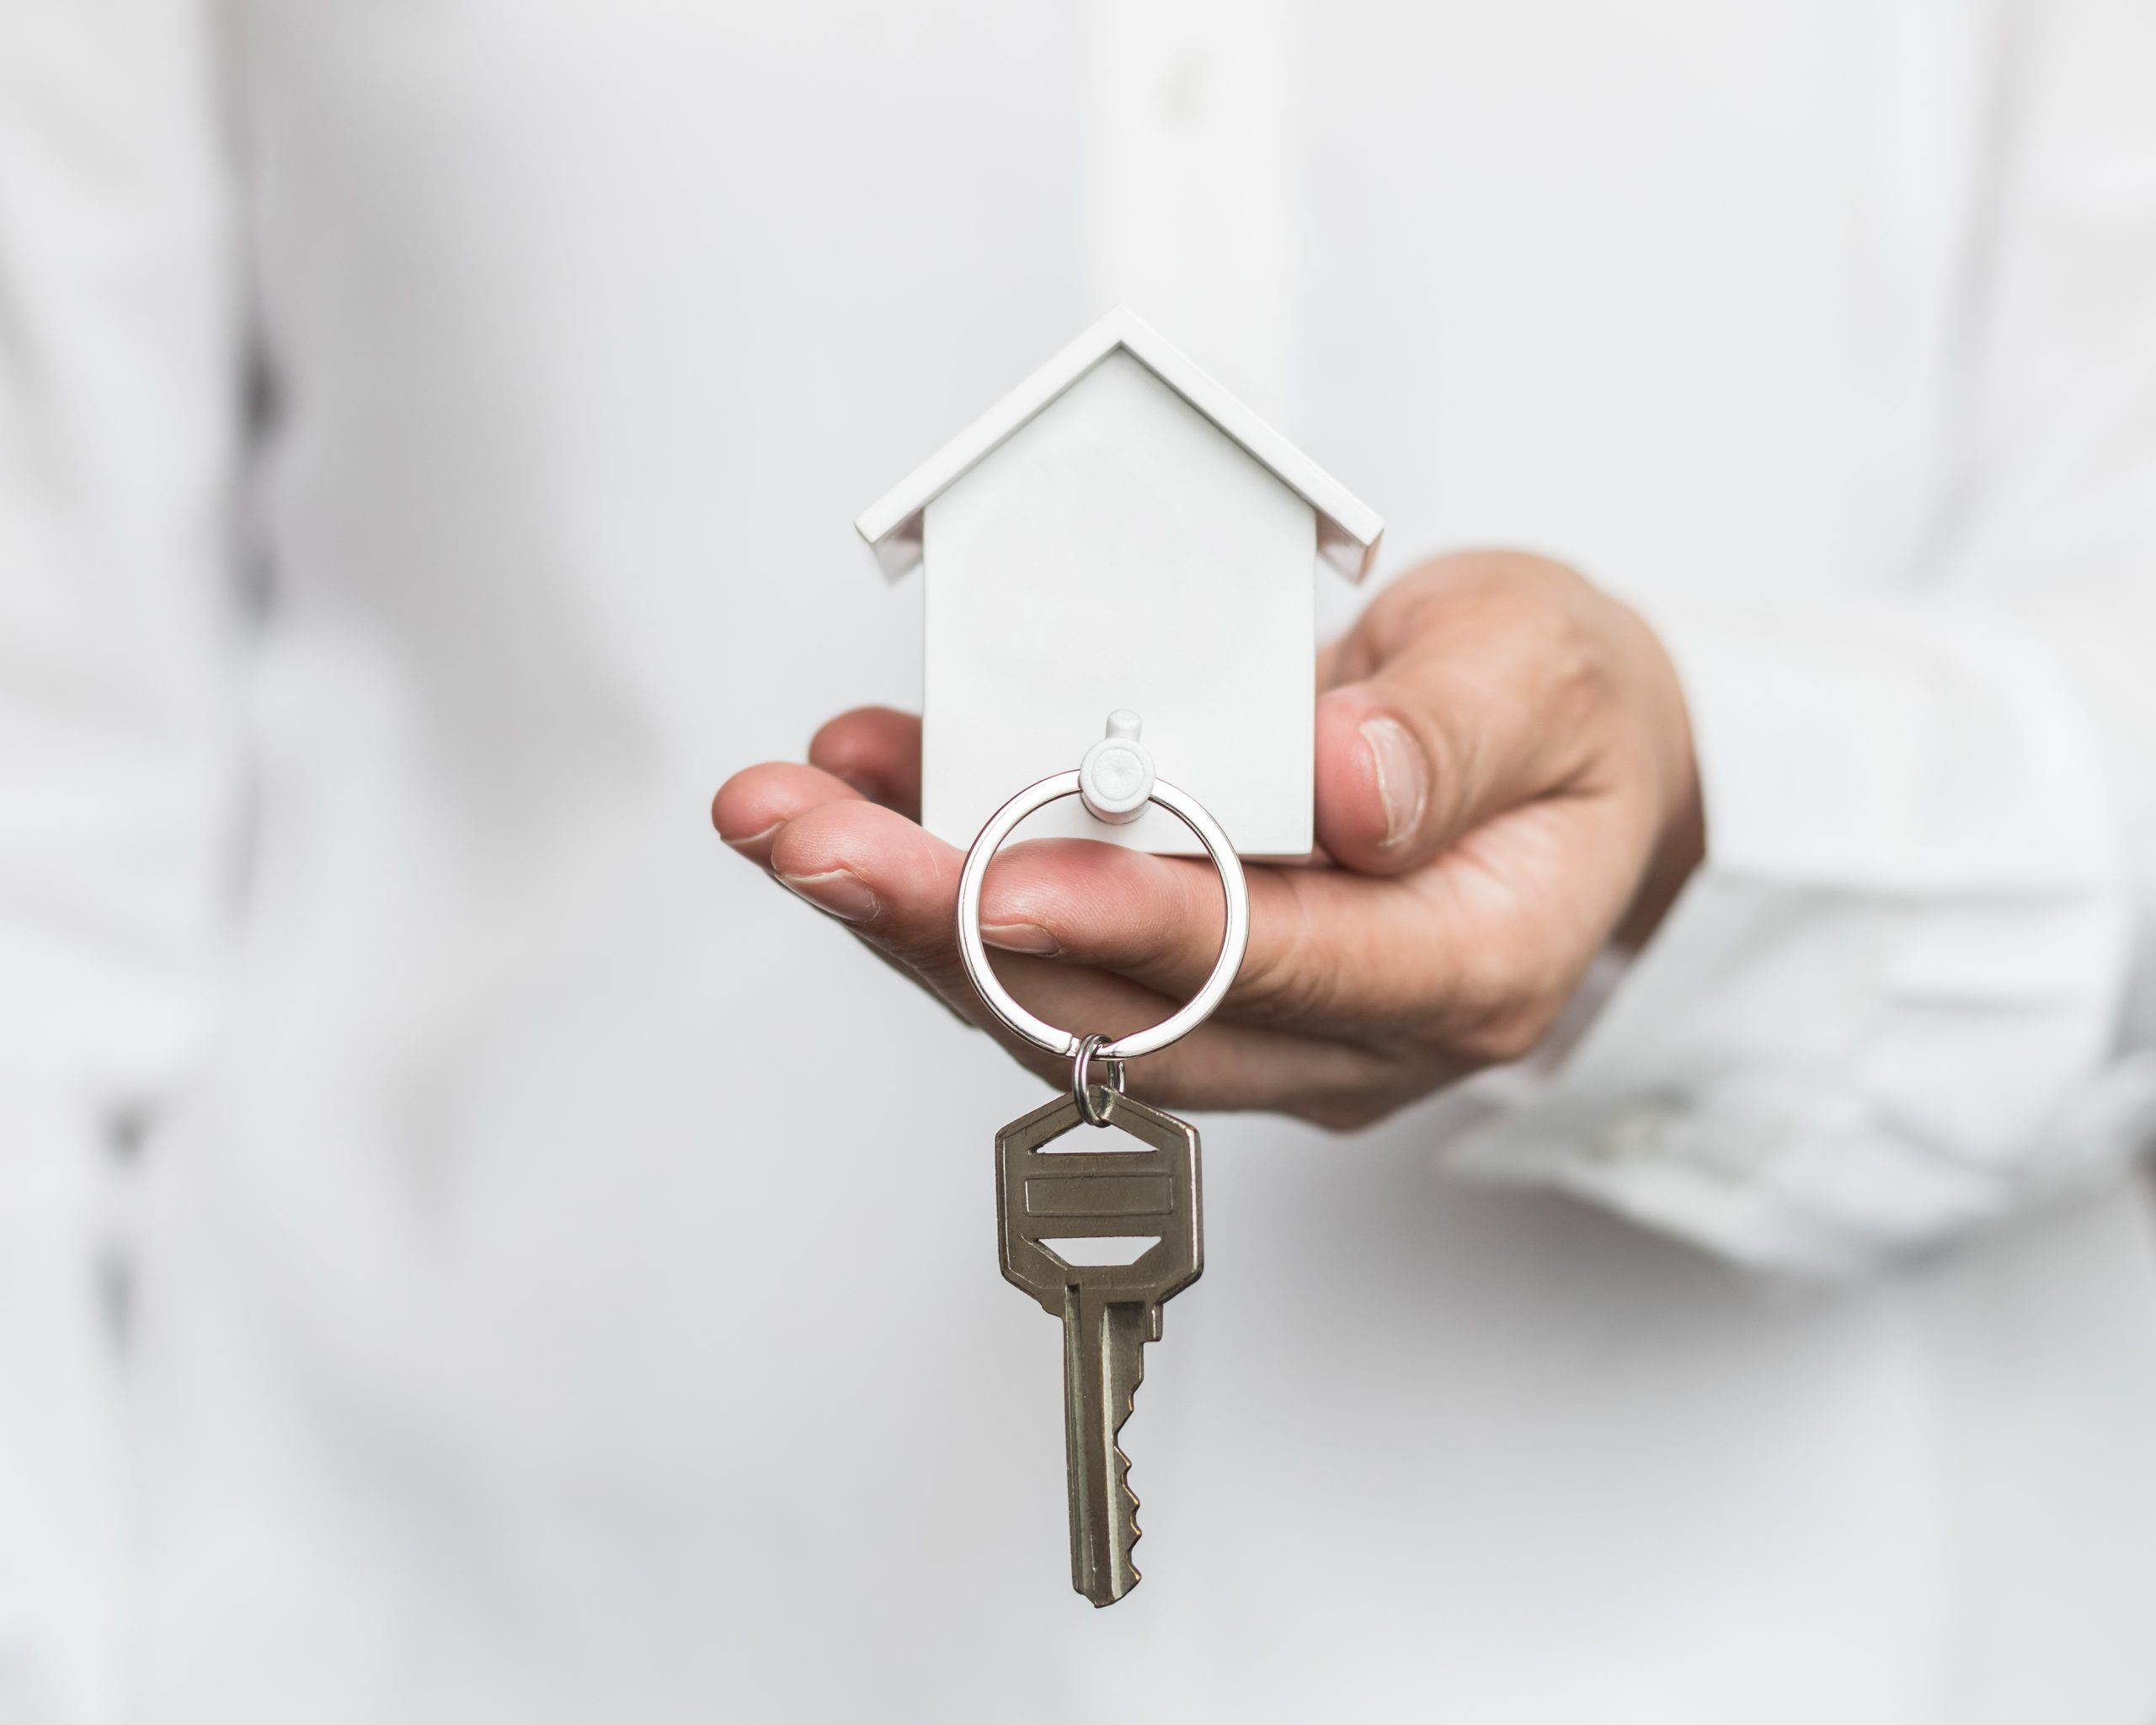 House,Key,In,Home,Insurance,Broker,Agent's,Hand,Protection,Or